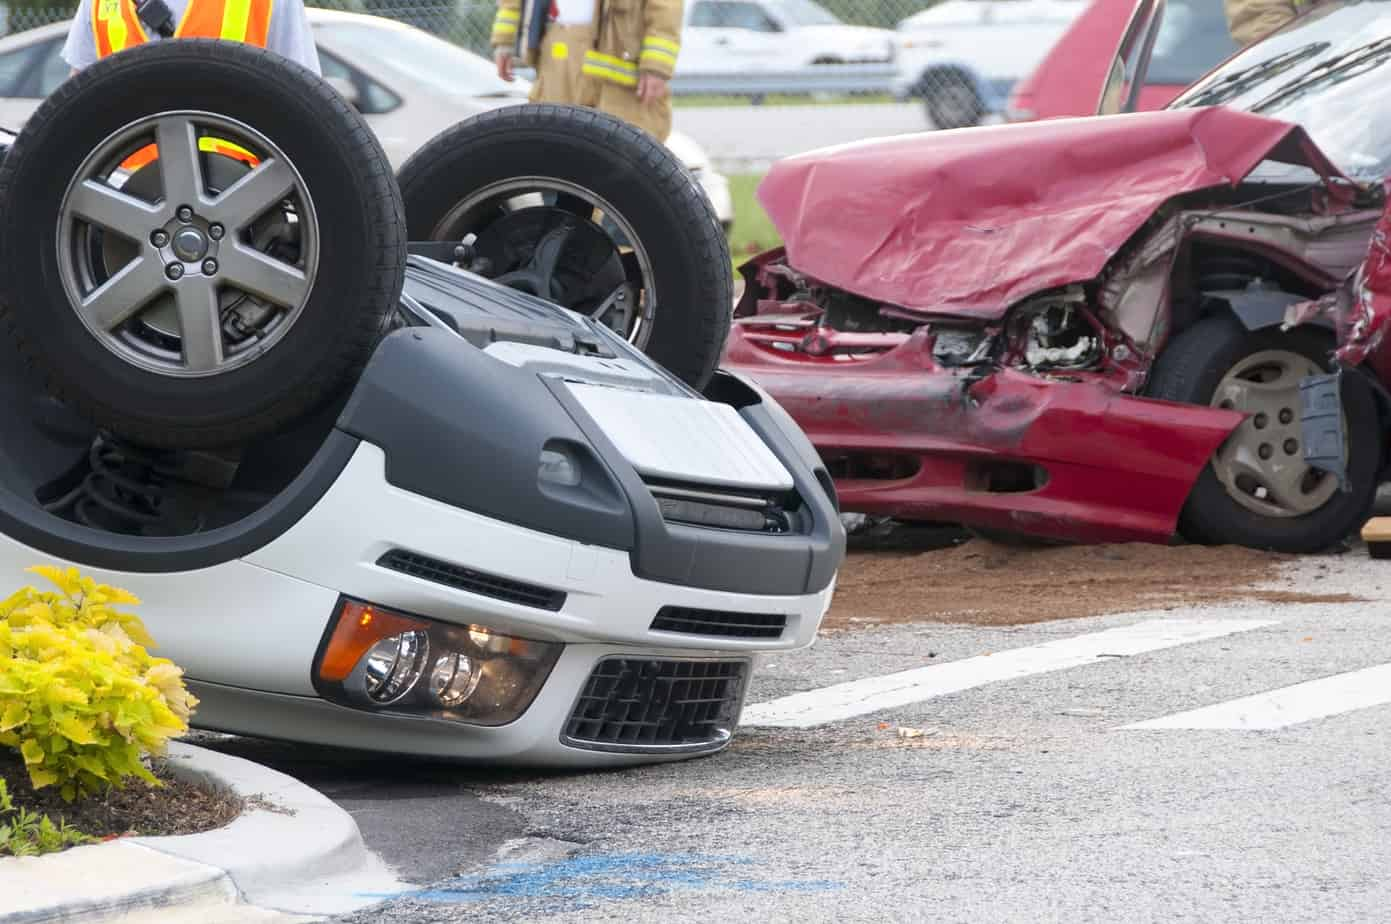 Personal Injury Attorneys In Macon Ga Represent Distracted Driver Victims Powers Law Group